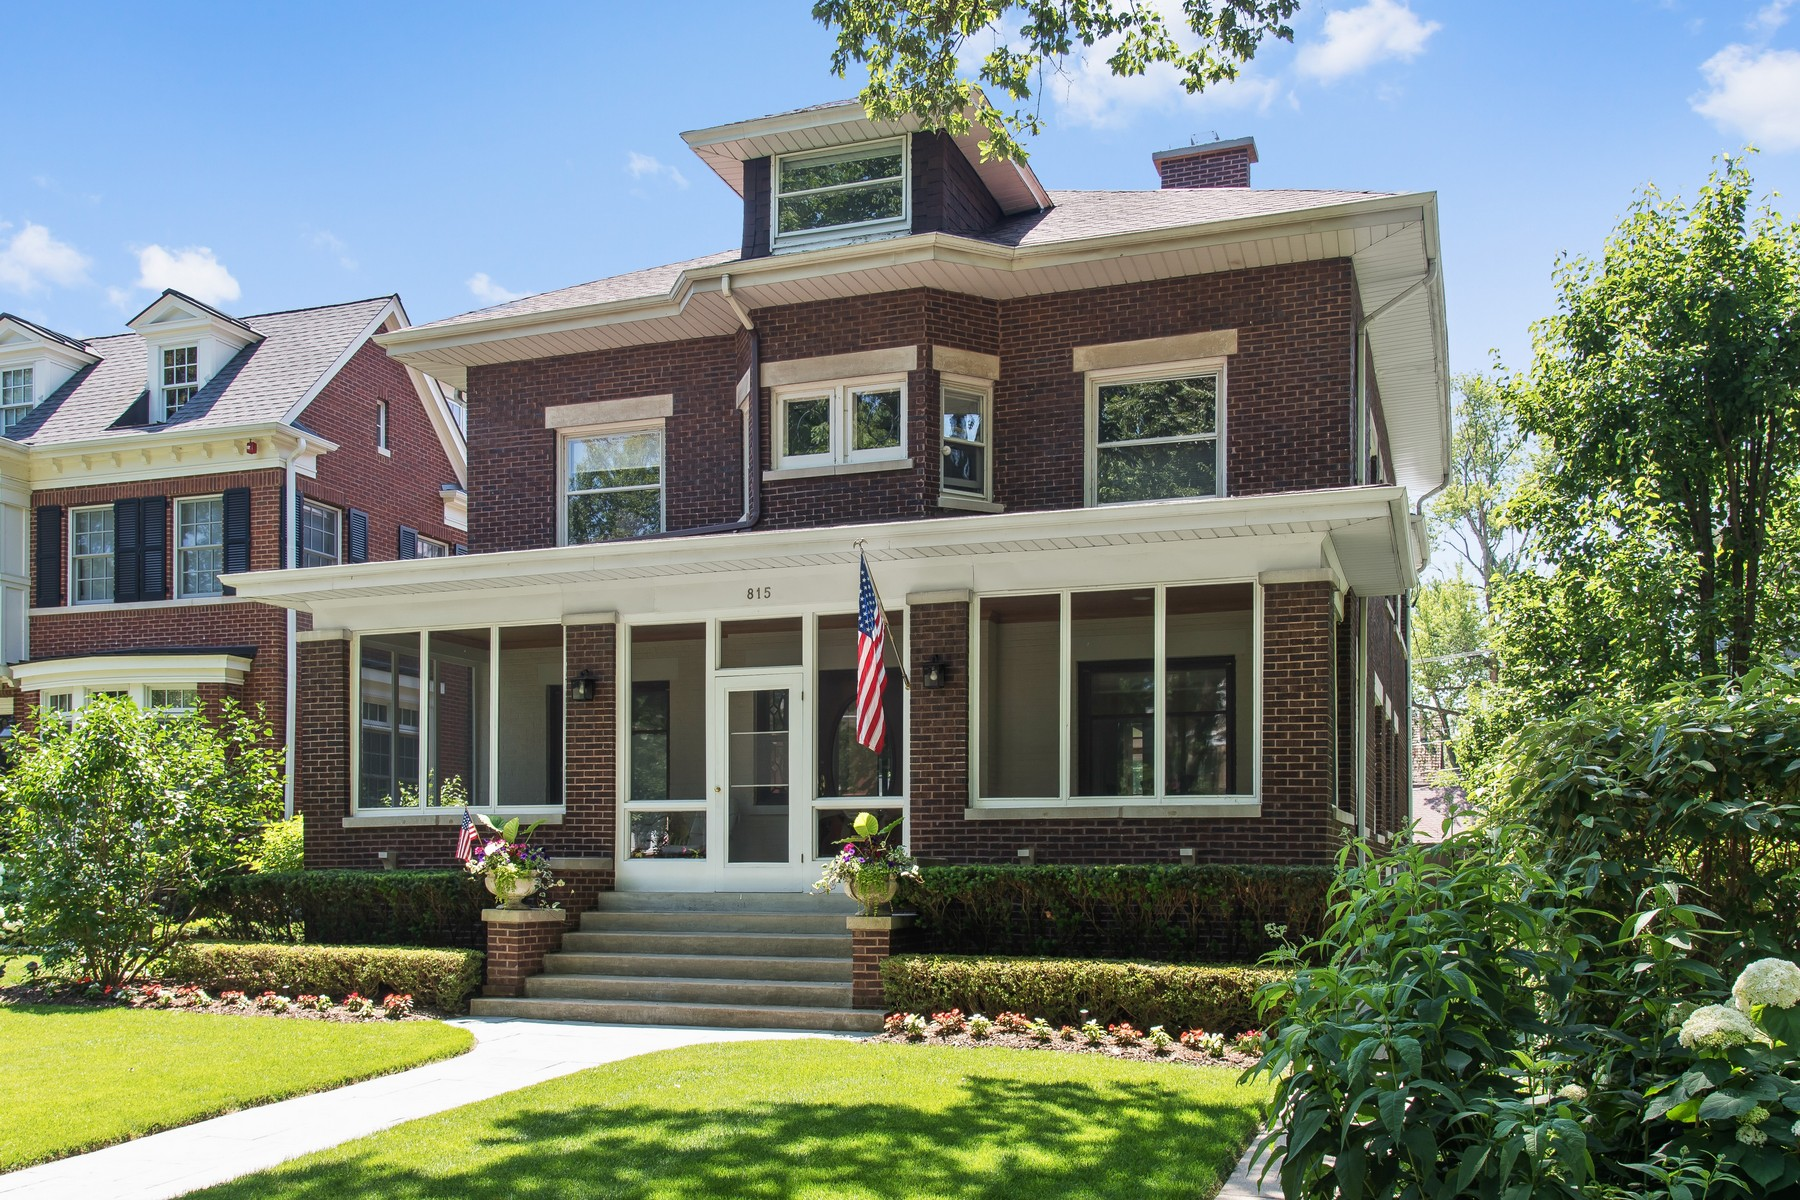 Villa per Vendita alle ore Gracious, Handsome Two Story Home 815 Forest Avenue Wilmette, Illinois, 60091 Stati Uniti